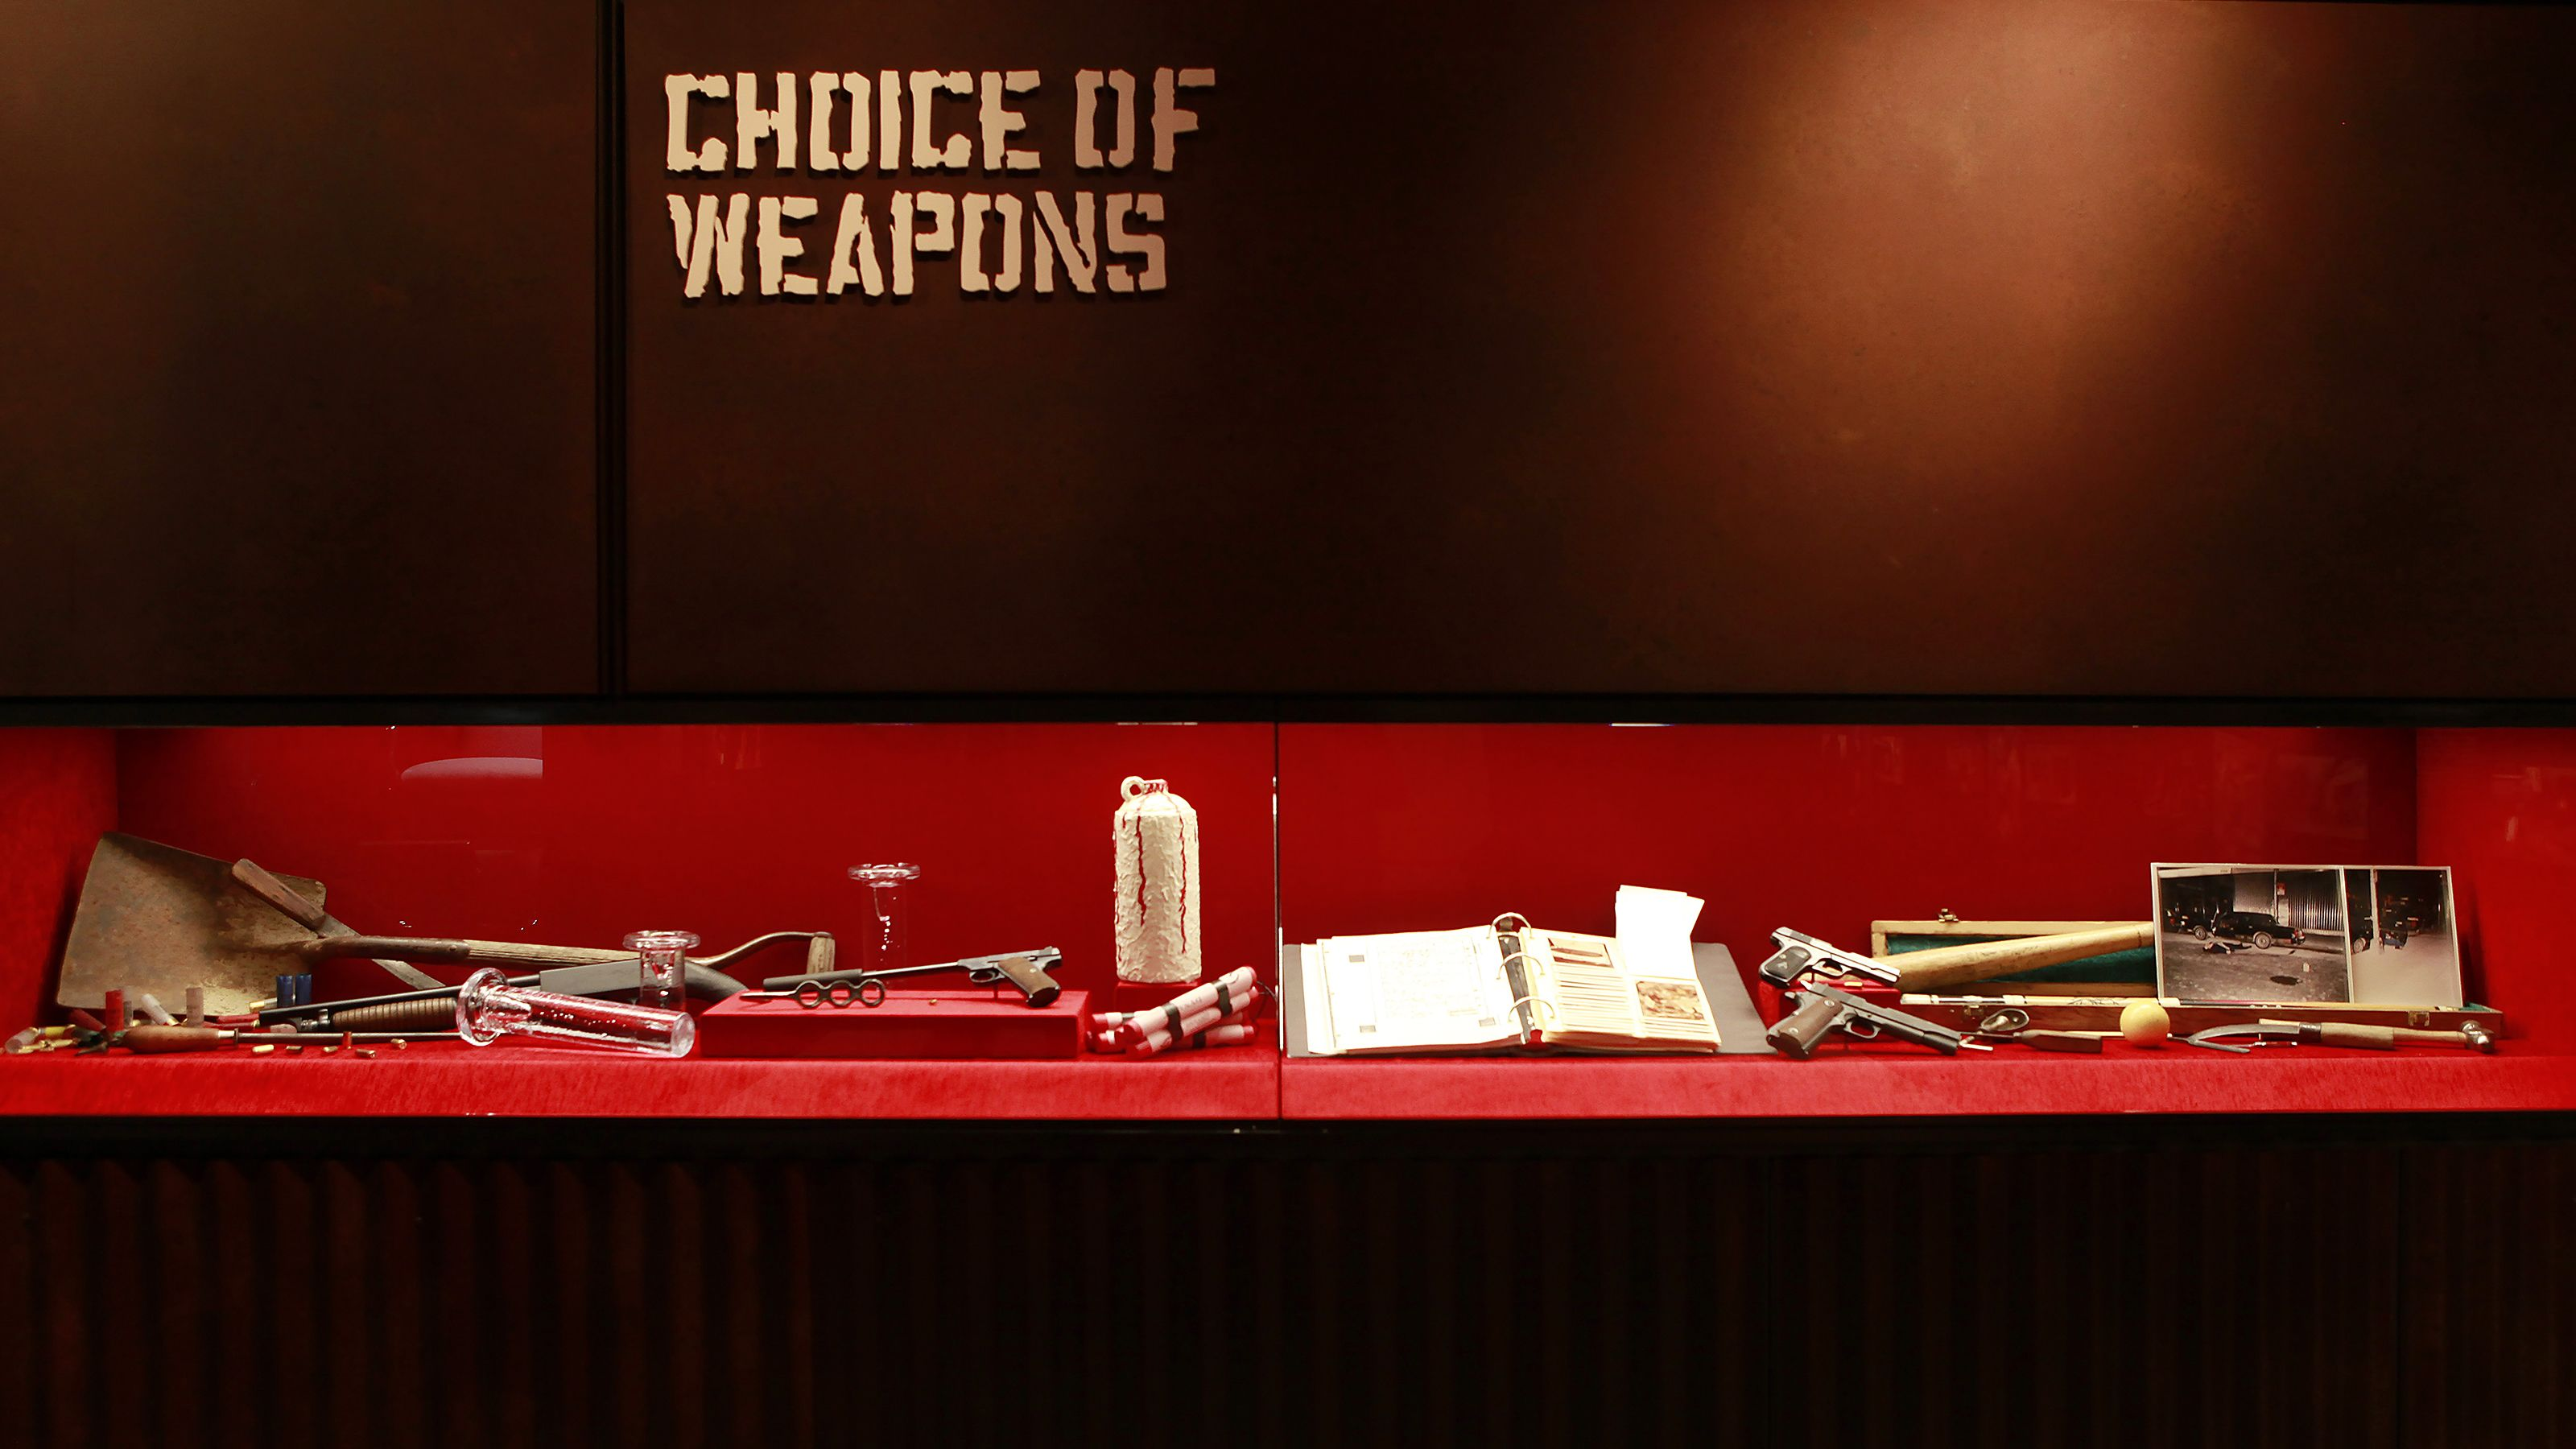 Choice of Weapons exhibit at the Mob Museum in Las Vegas